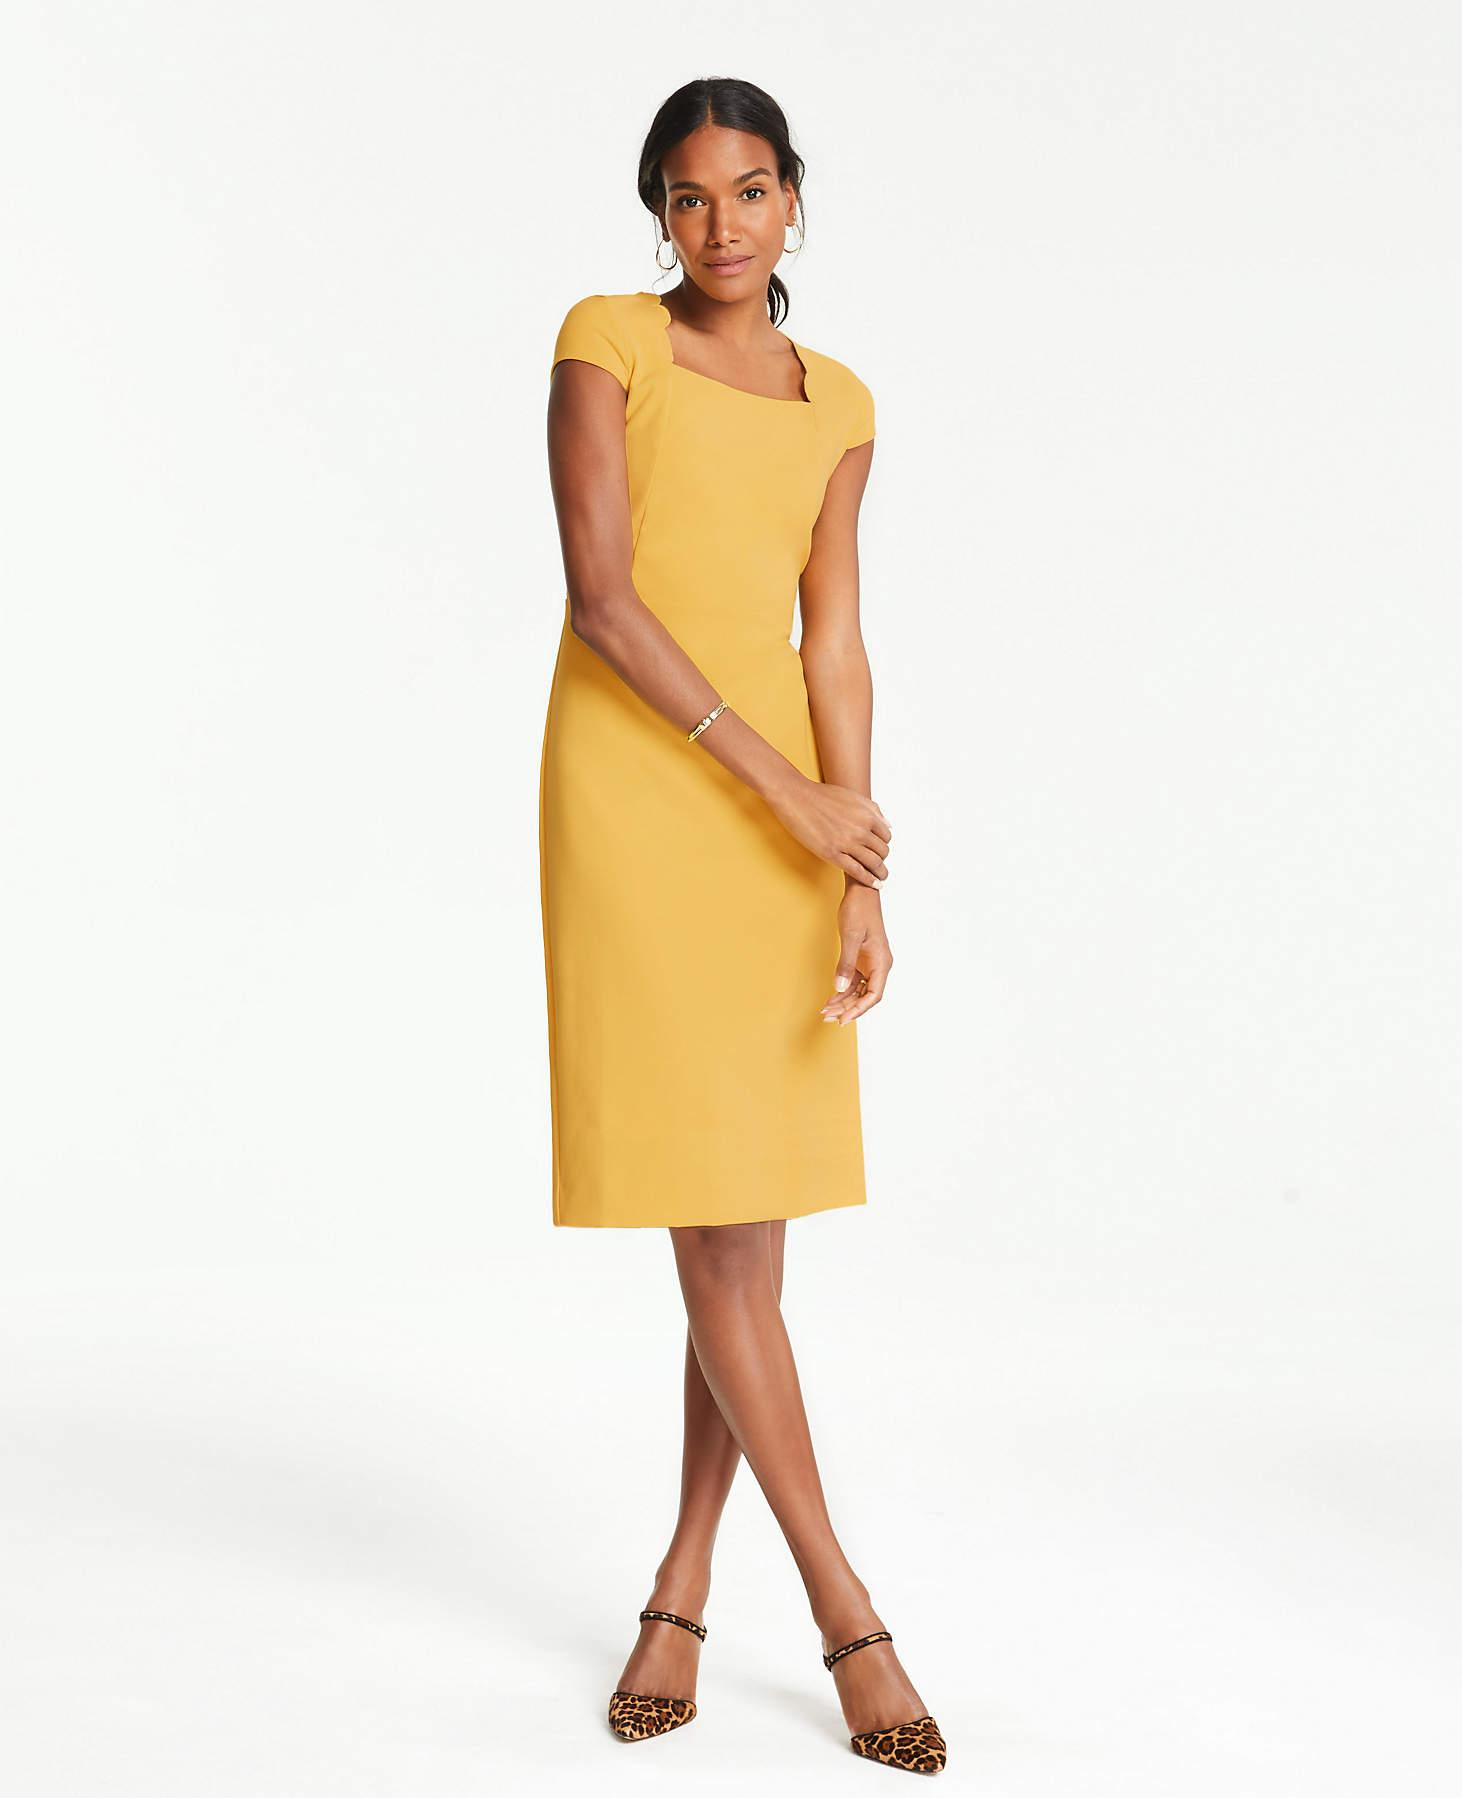 a67f0bb34a7 Ann Taylor - Yellow Scalloped Square Neck Cap Sheath Dress - Lyst. View  fullscreen